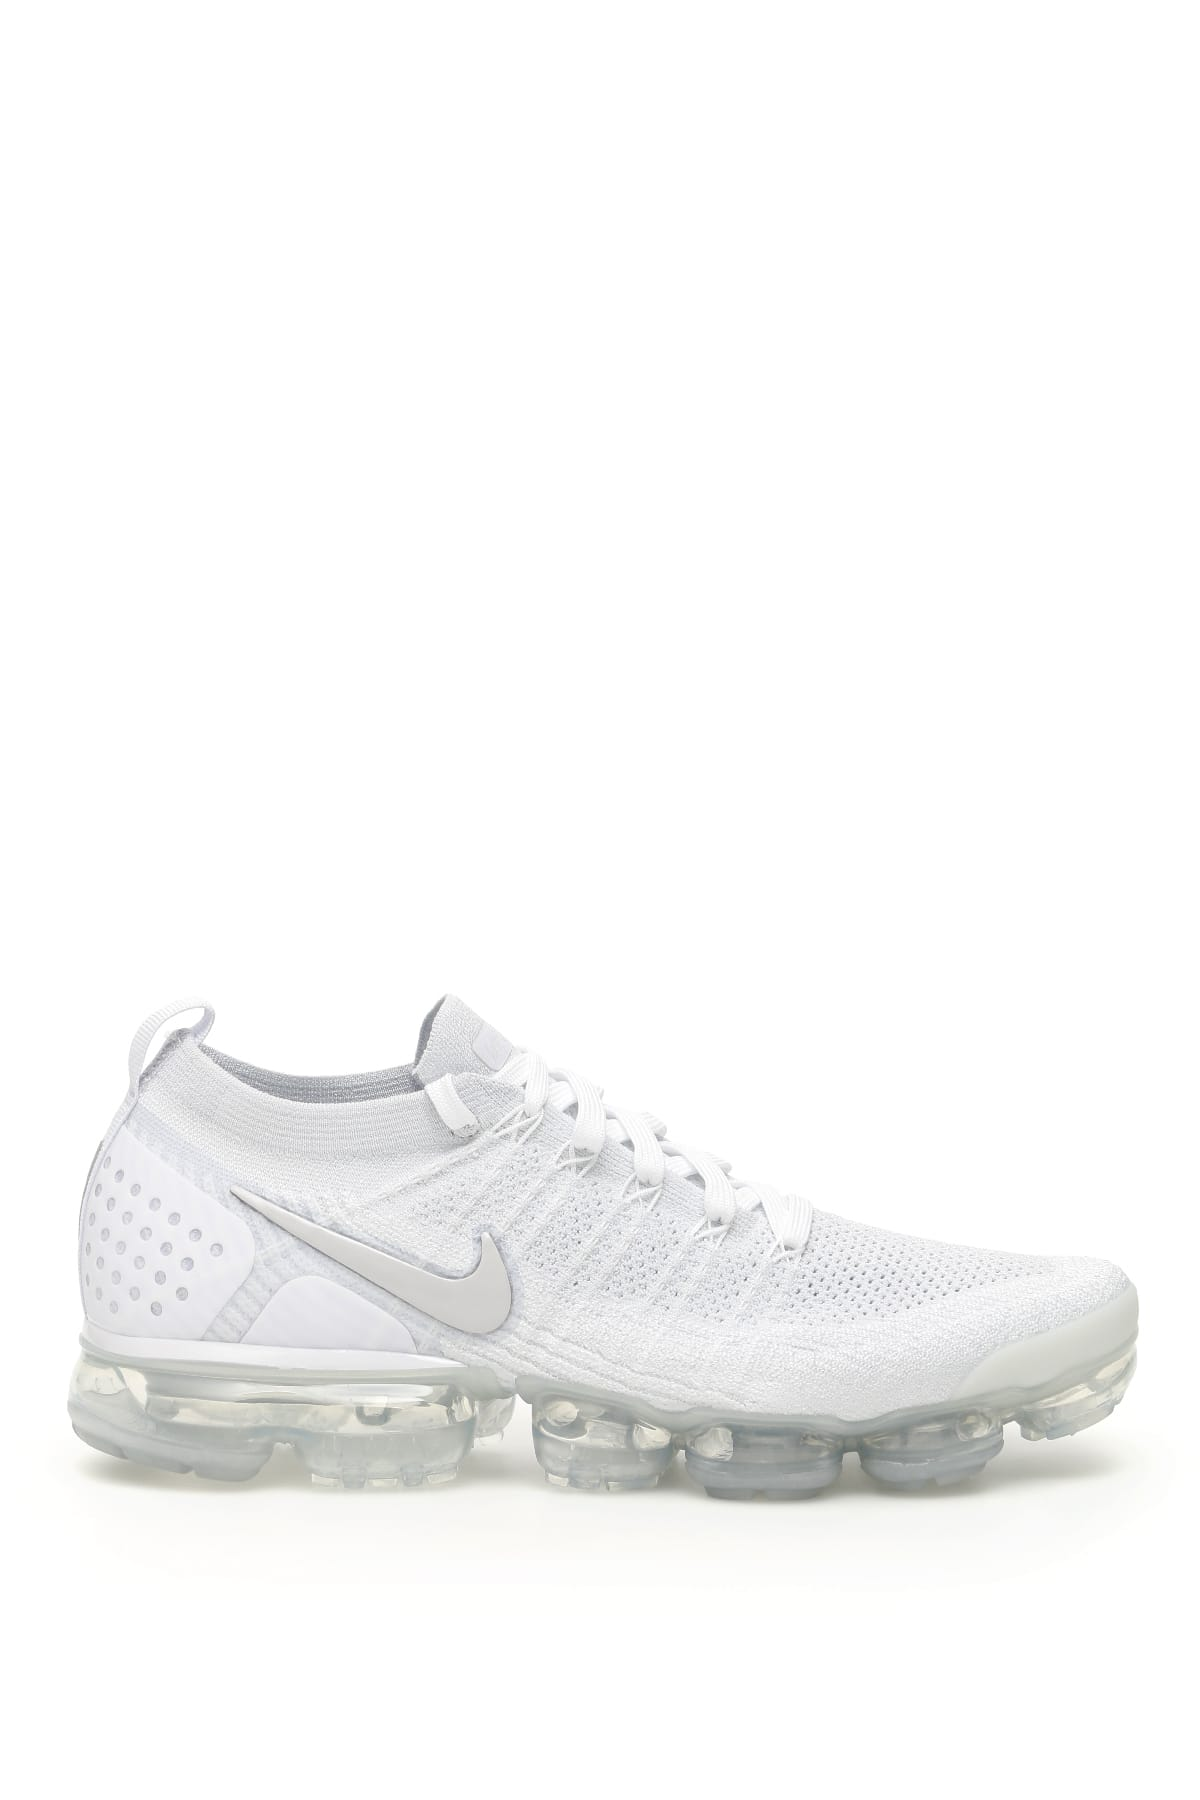 new product 95cdb 2ca2d Nike Air Vapormax Flyknit 2 Sneakers